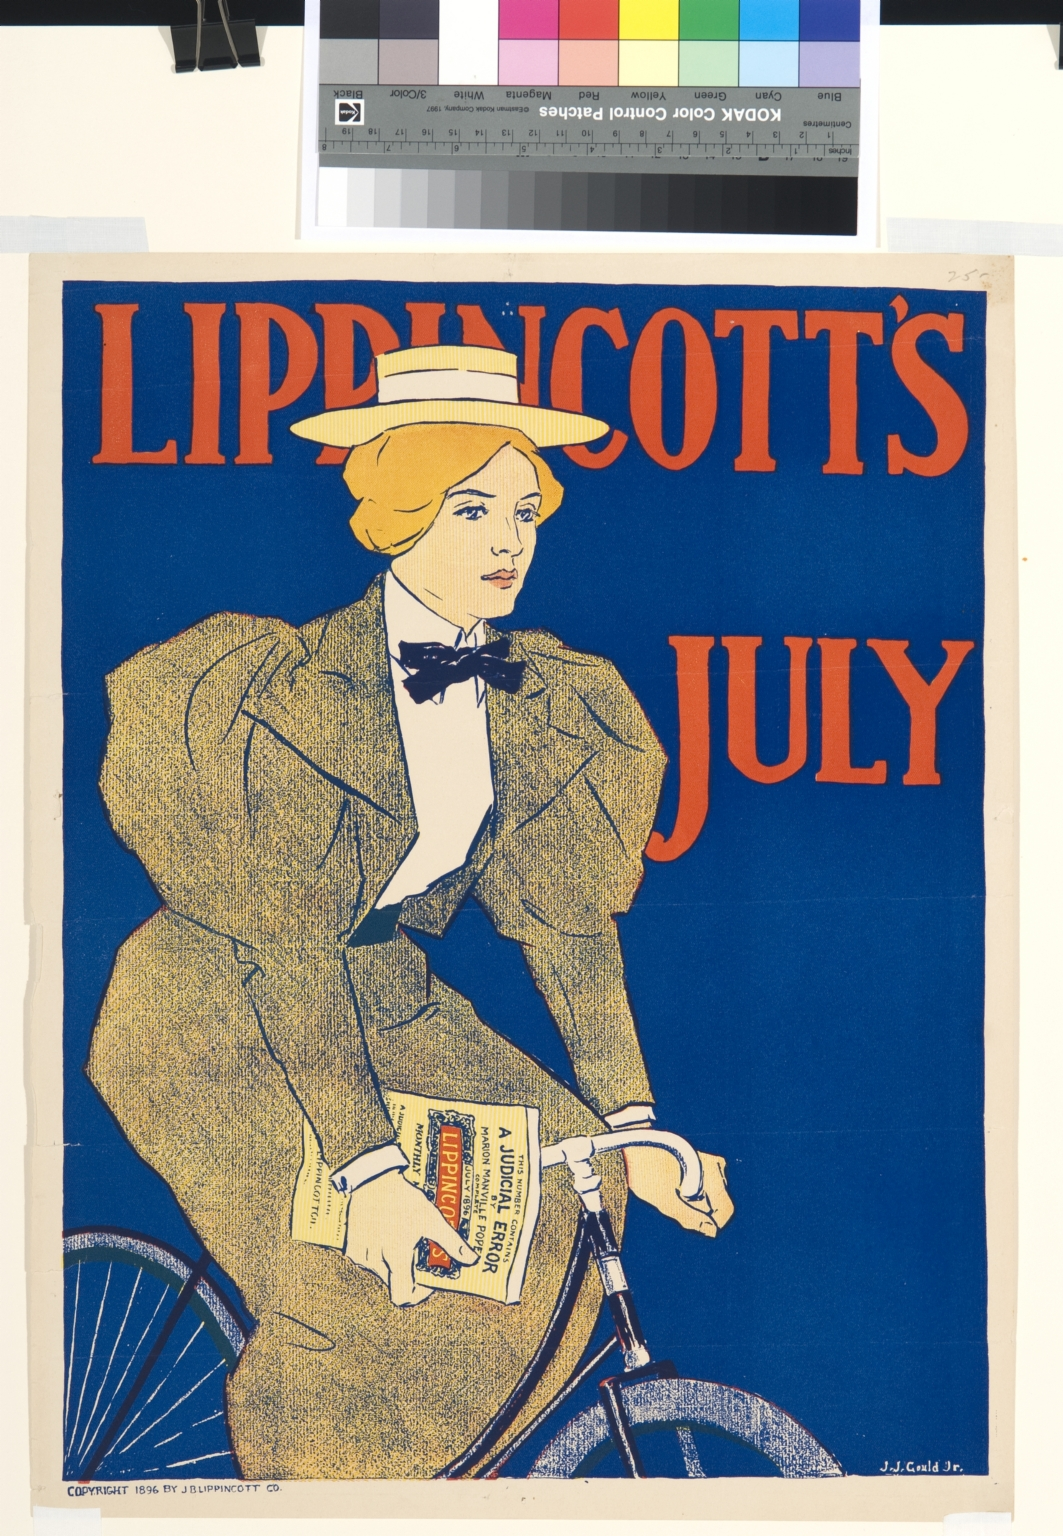 Lippincott's July